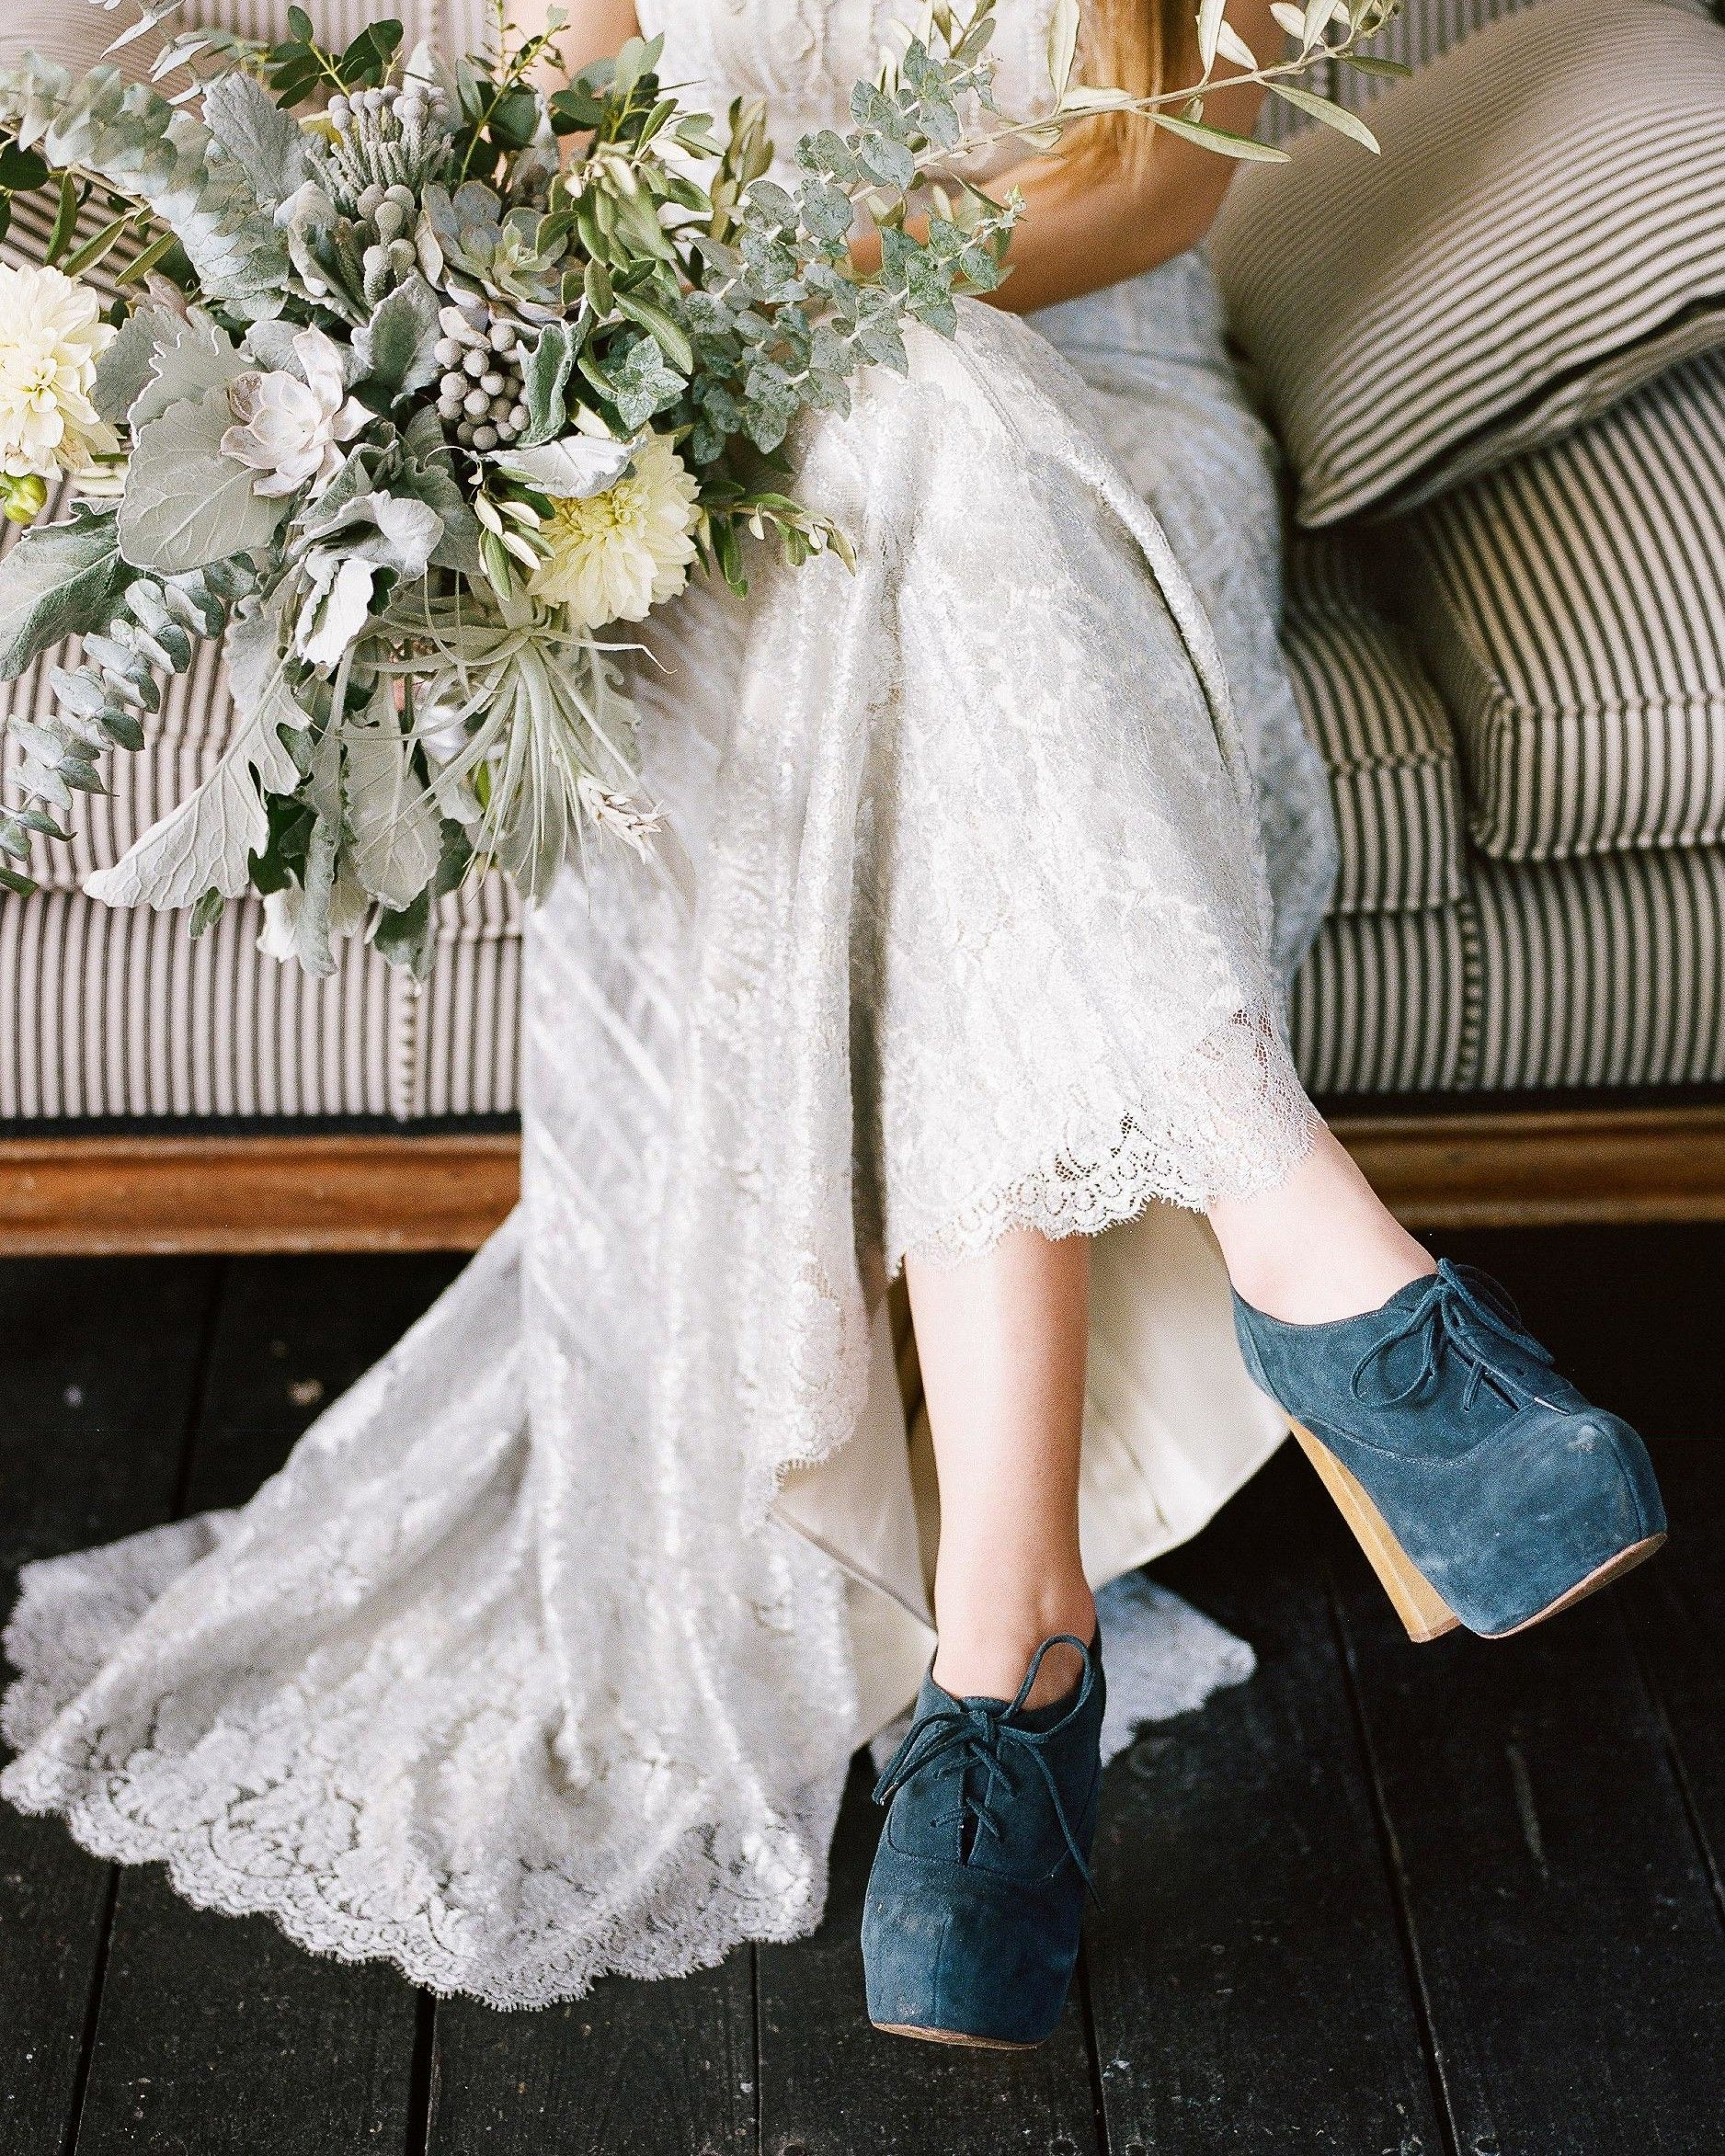 25 Nontraditional Wedding Shoe Ideas From Stylish Brides Weddingshoes Wedd Nontraditional Wedding Dress Nontraditional Wedding Industrial Wedding Inspiration